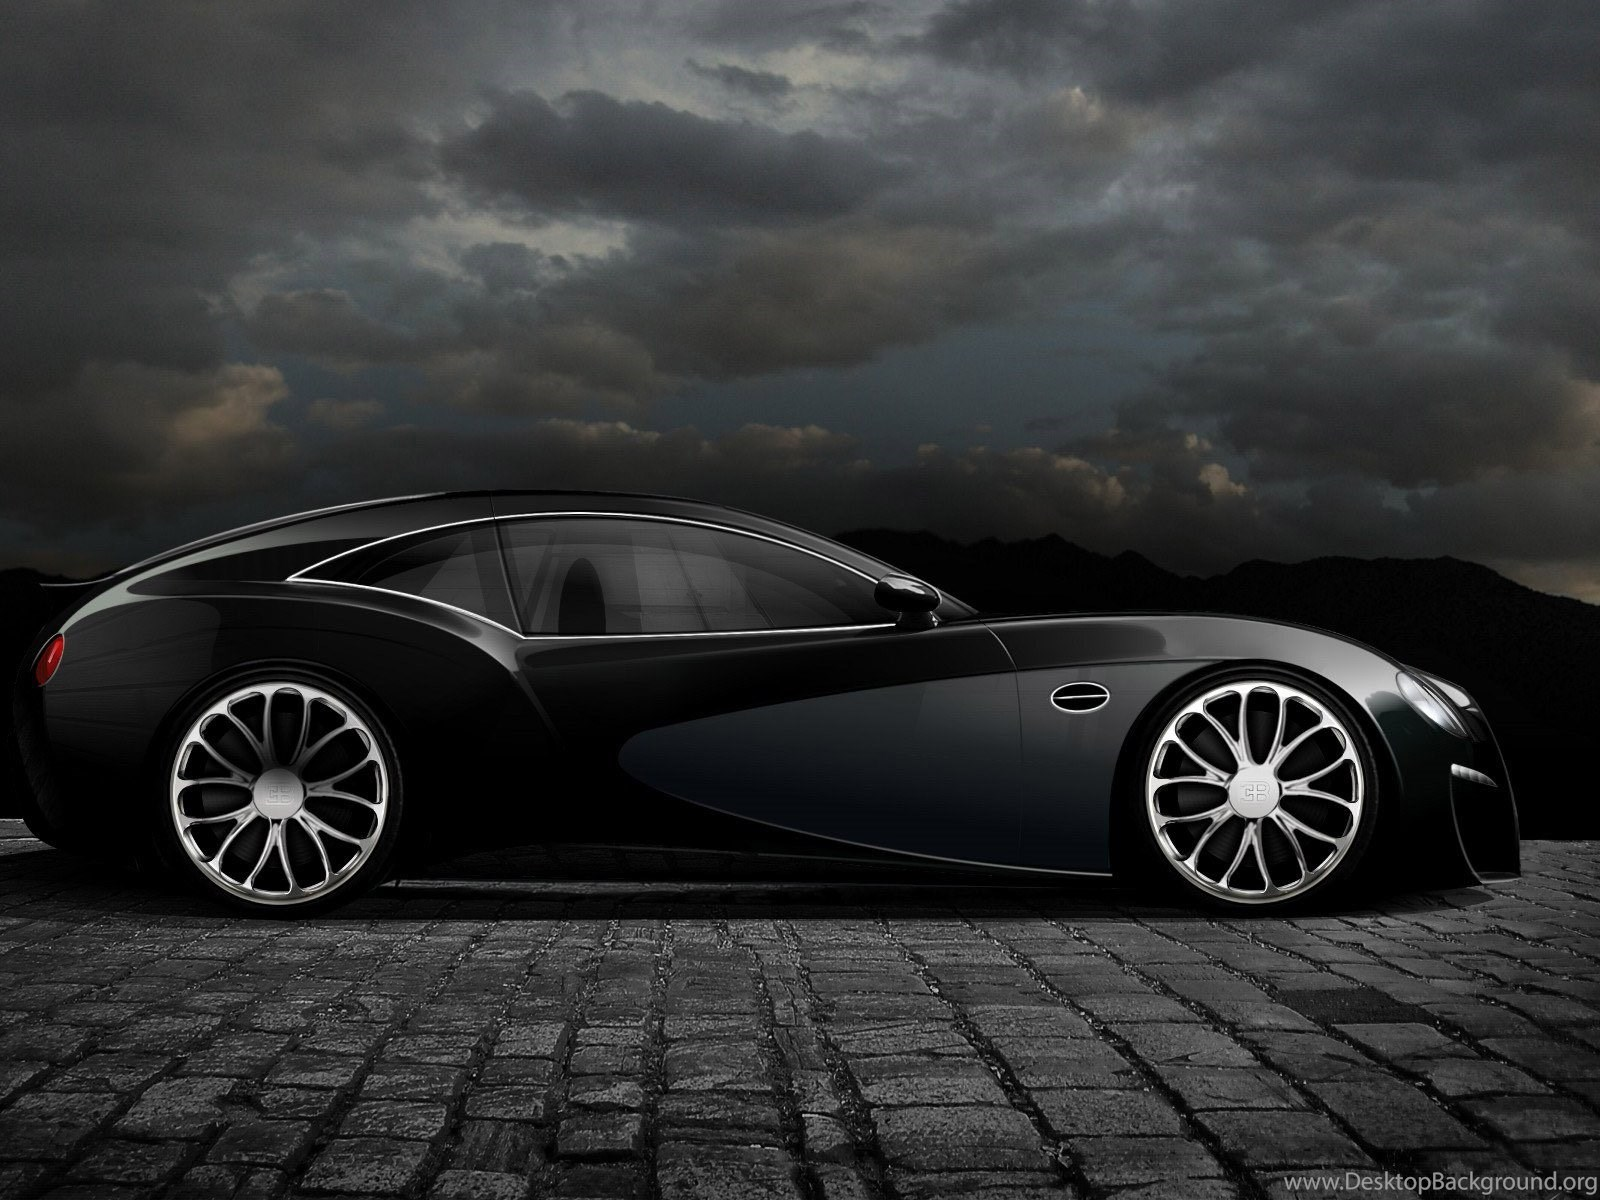 Cool Black Cars Wallpapers HD Wallpaper Backgrounds Your